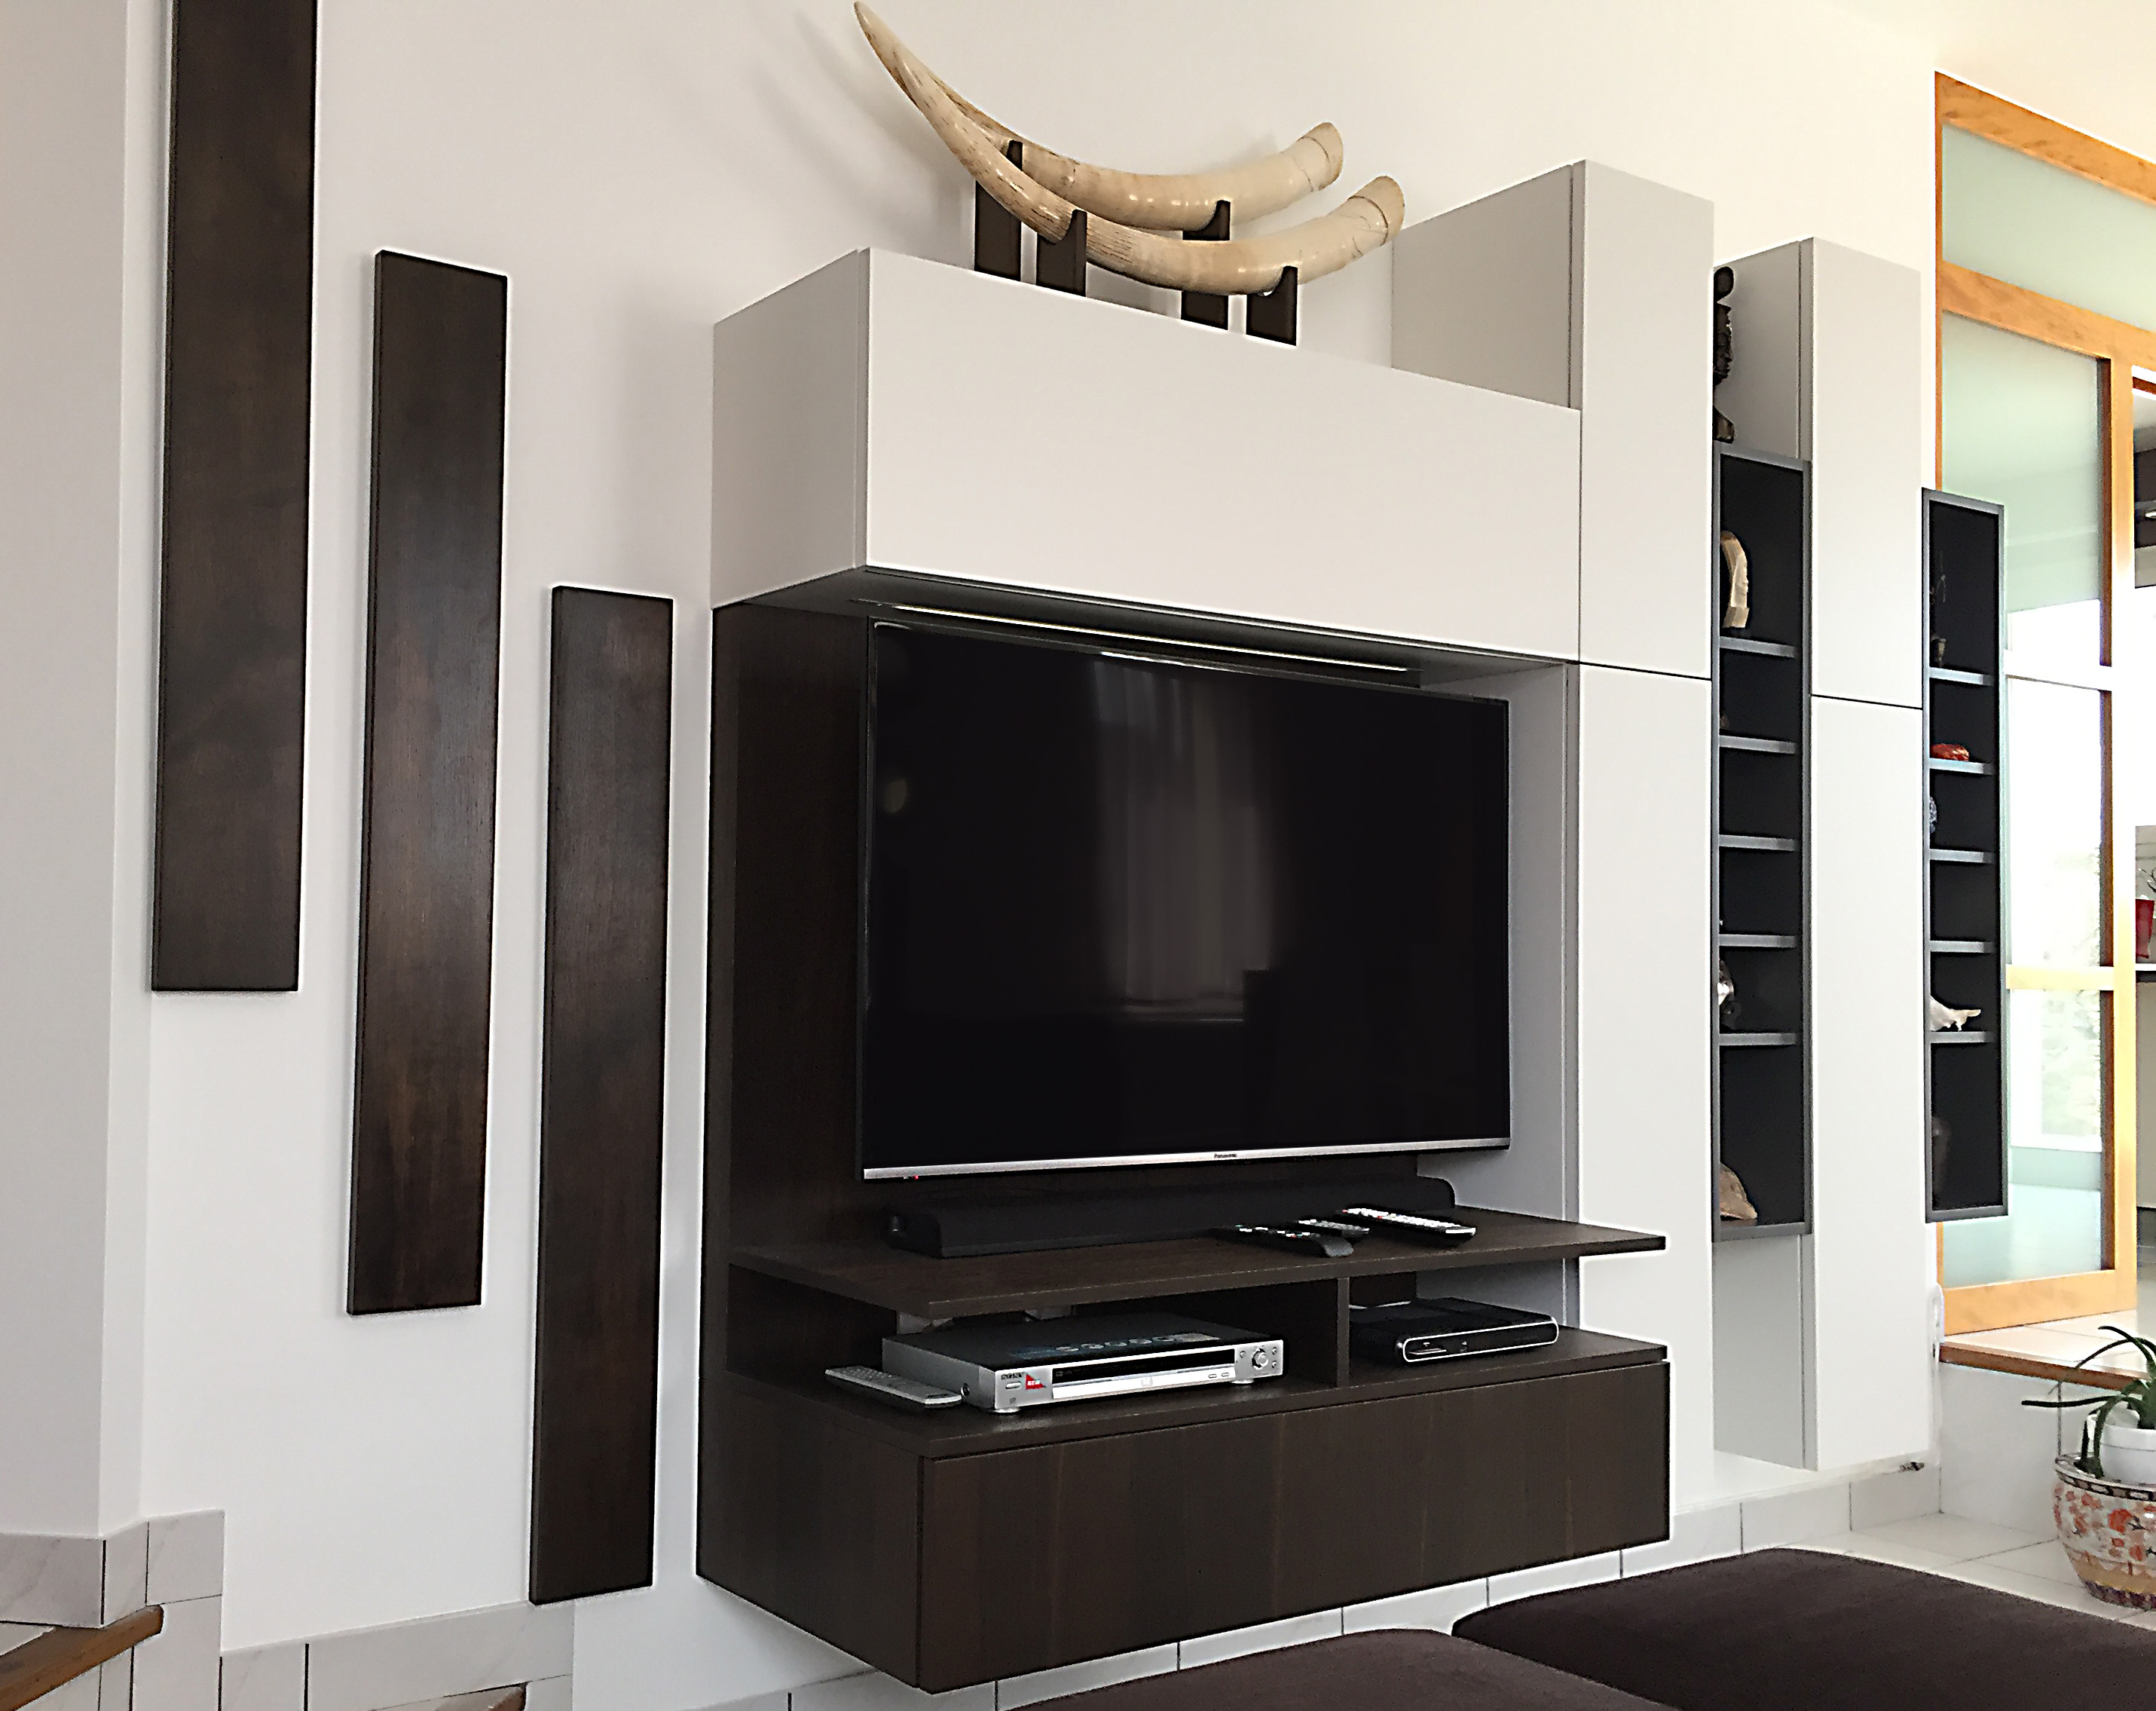 Elegant meuble tv suspendu blanc with meuble salon suspendu for Meuble sejour suspendu